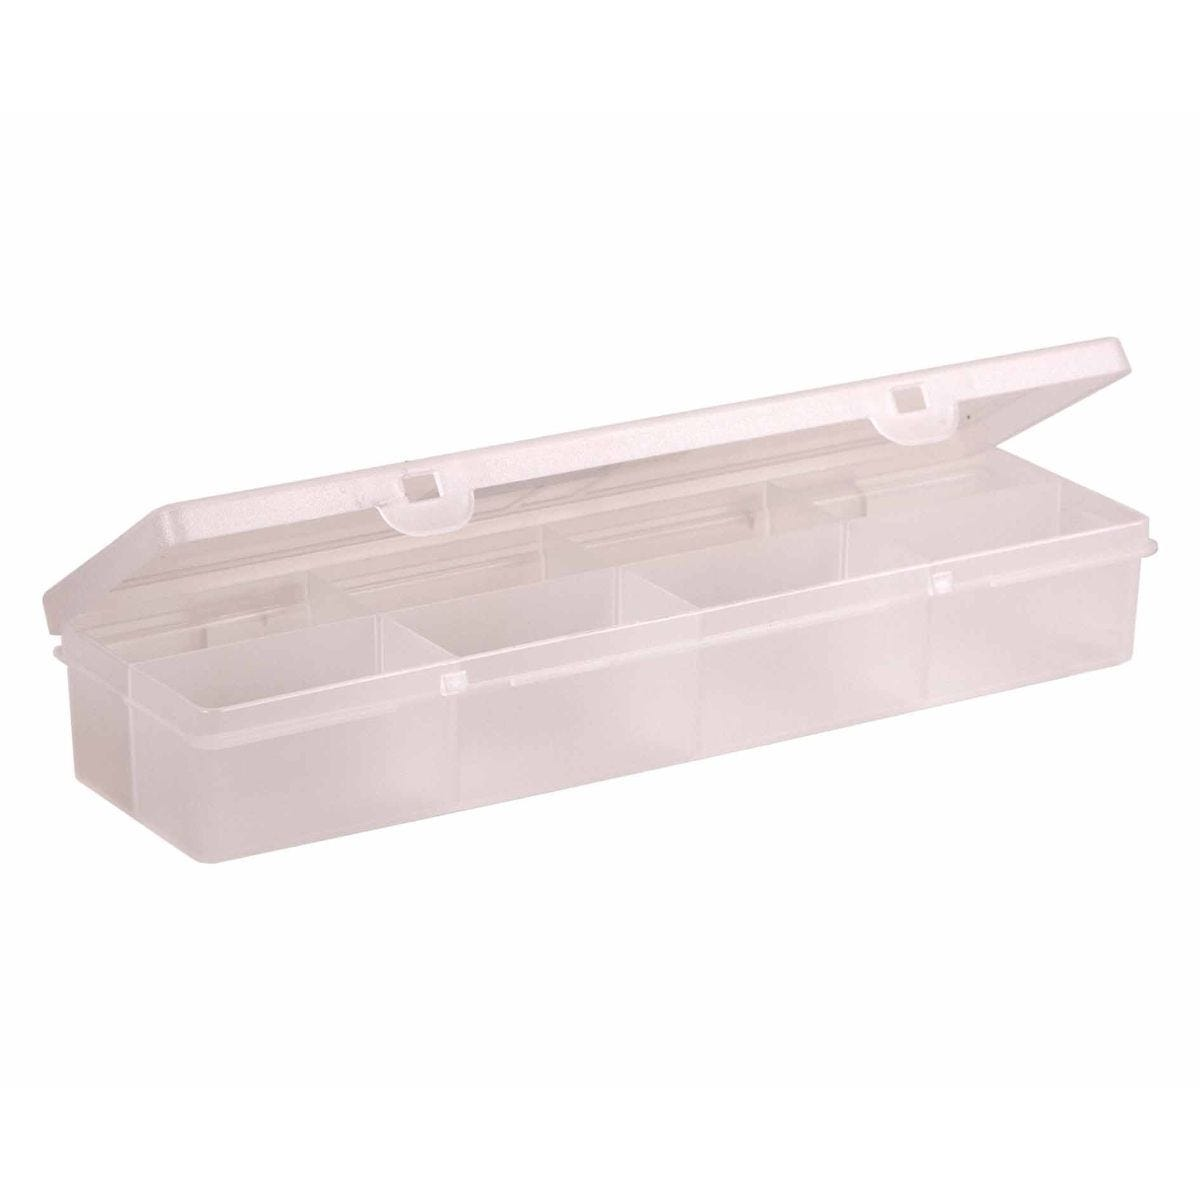 Wham Organiser Box 4.01 with 8 Divisions